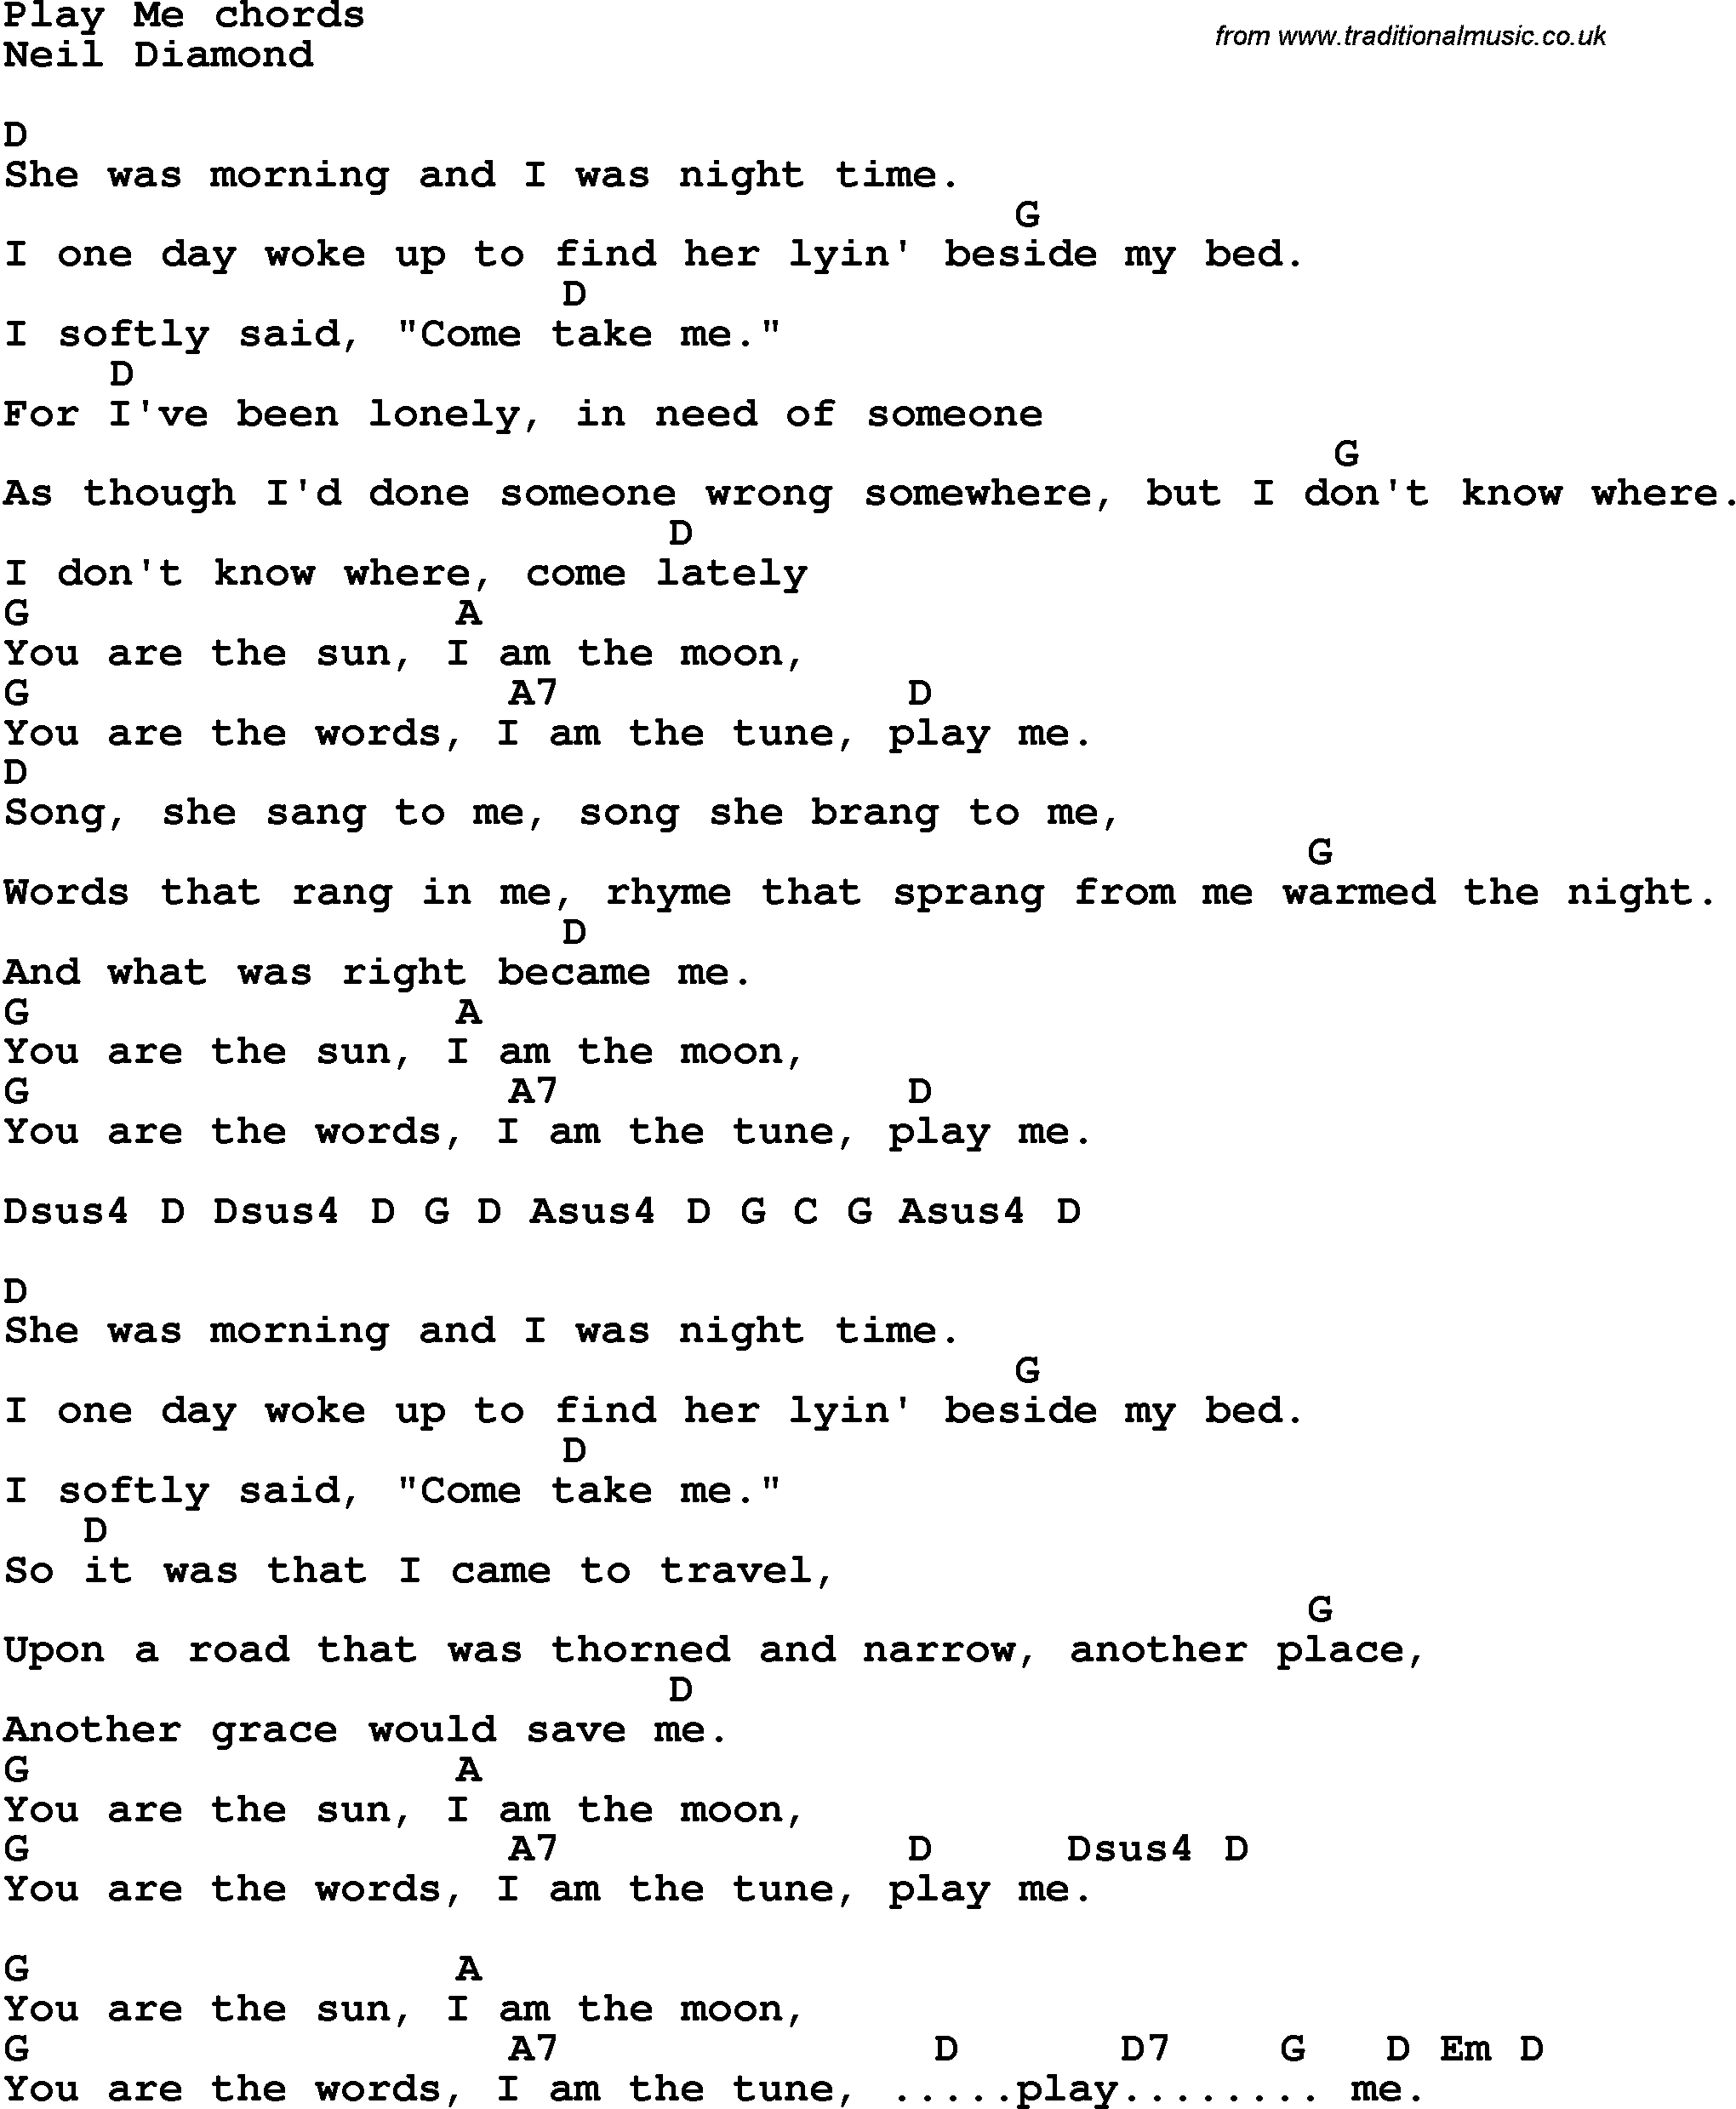 Song lyrics with guitar chords for play me song lyrics with guitar chords for play me hexwebz Image collections